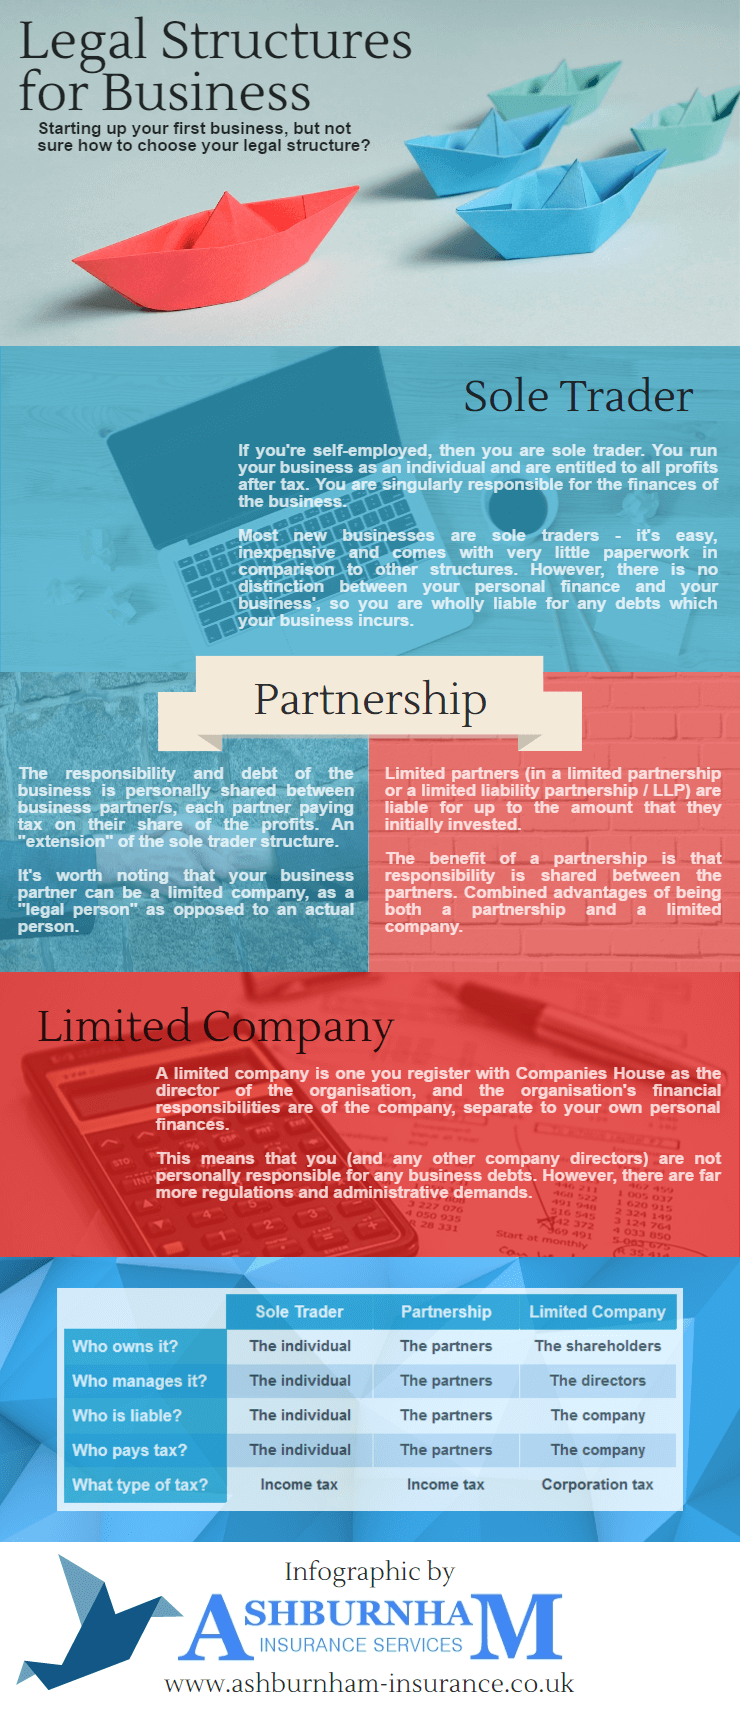 Legal Structures for Business Infographic